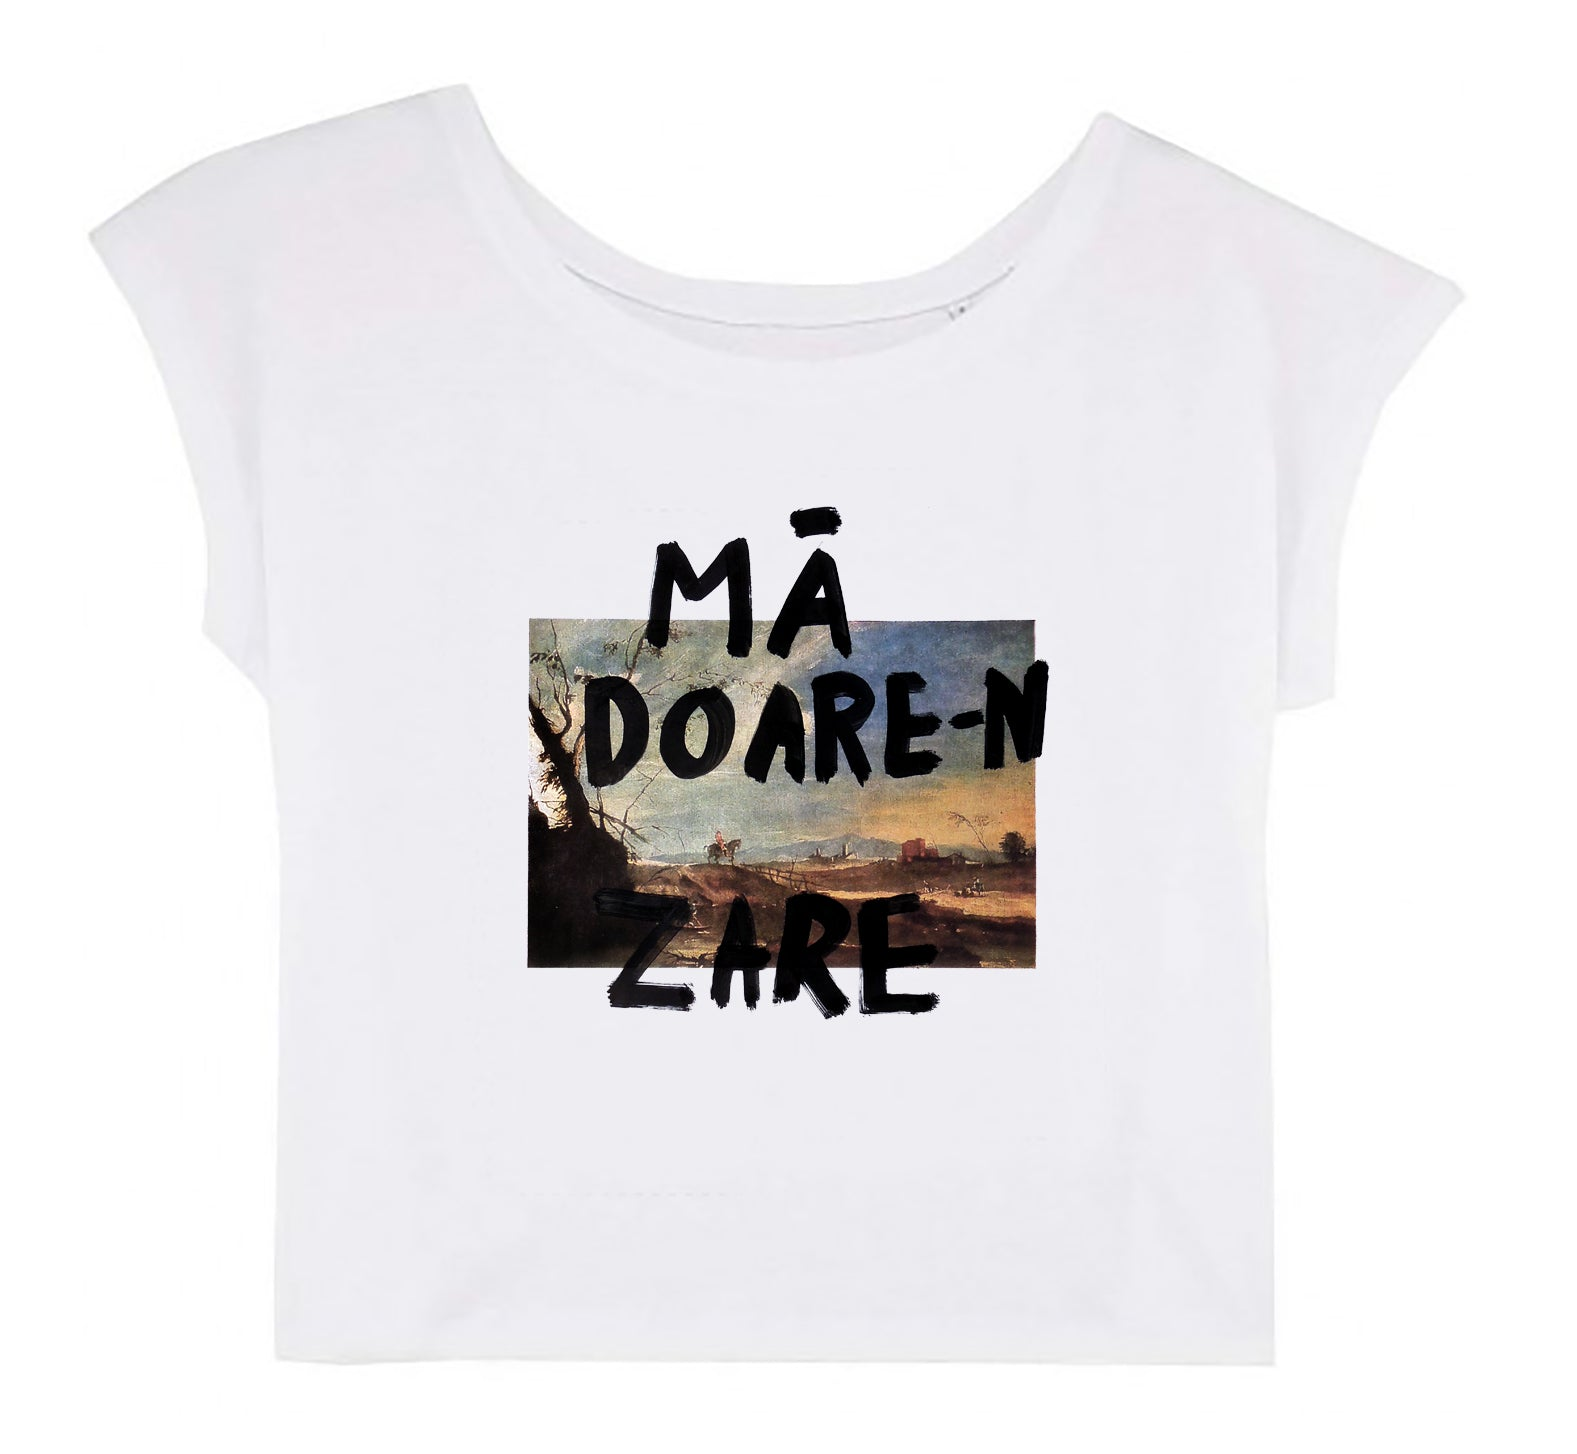 Women's Cropped T-shirt - Mă Doare-n Zare │ Lea Rasovszky - Mobius Store